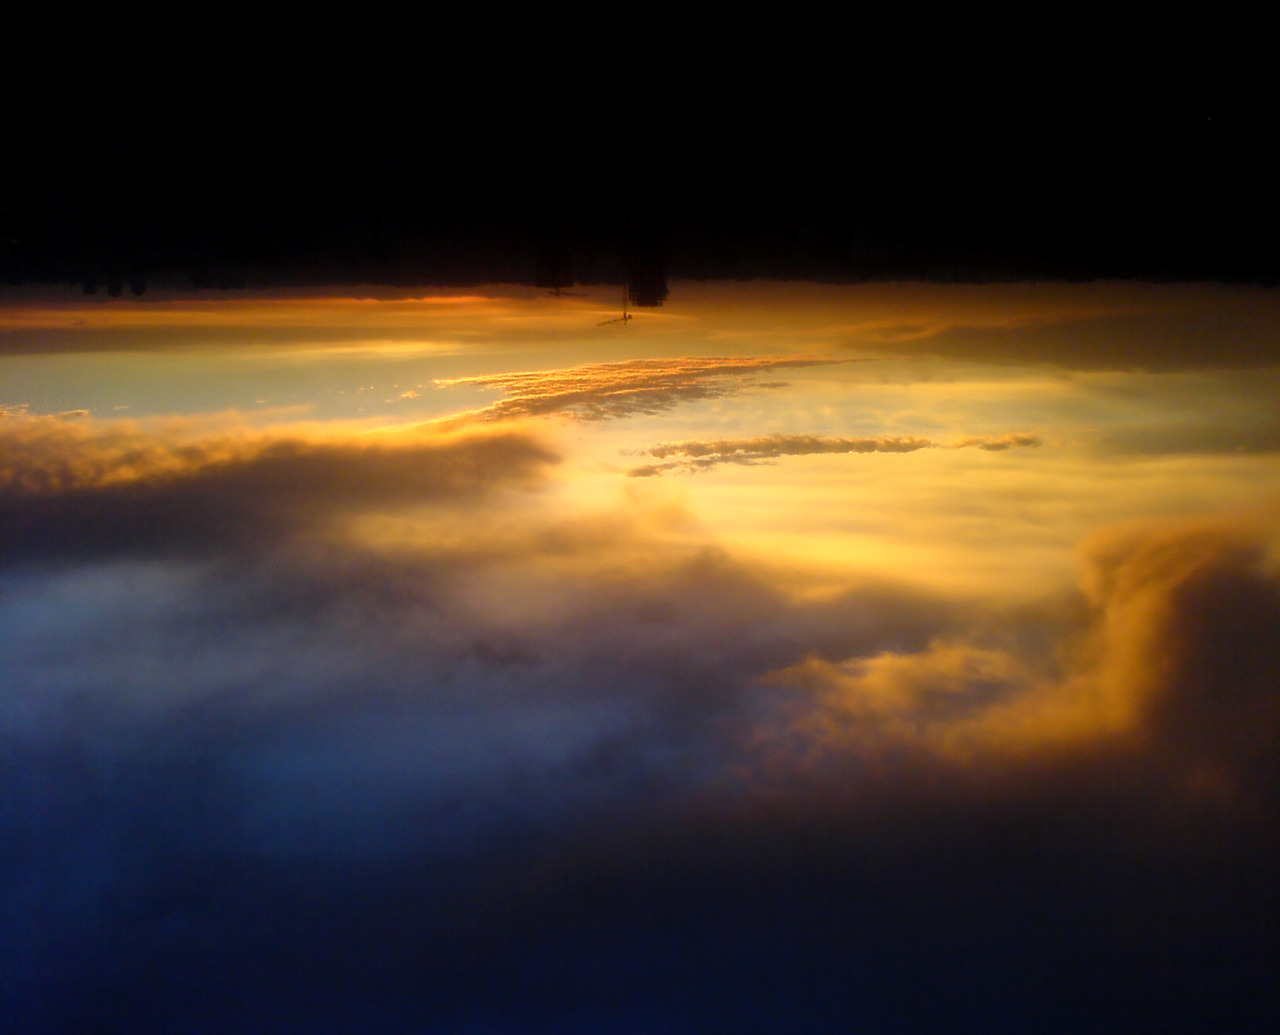 Upside Down Sunset For an upside down life. . : : : .  hchui replied to your photo: Upside Down Sunset For an upside down life. this is amazing! the illusion almost made me believe you were on an airplane That was the idea, I'm glad someone saw the same as me. Thanks for the comment!